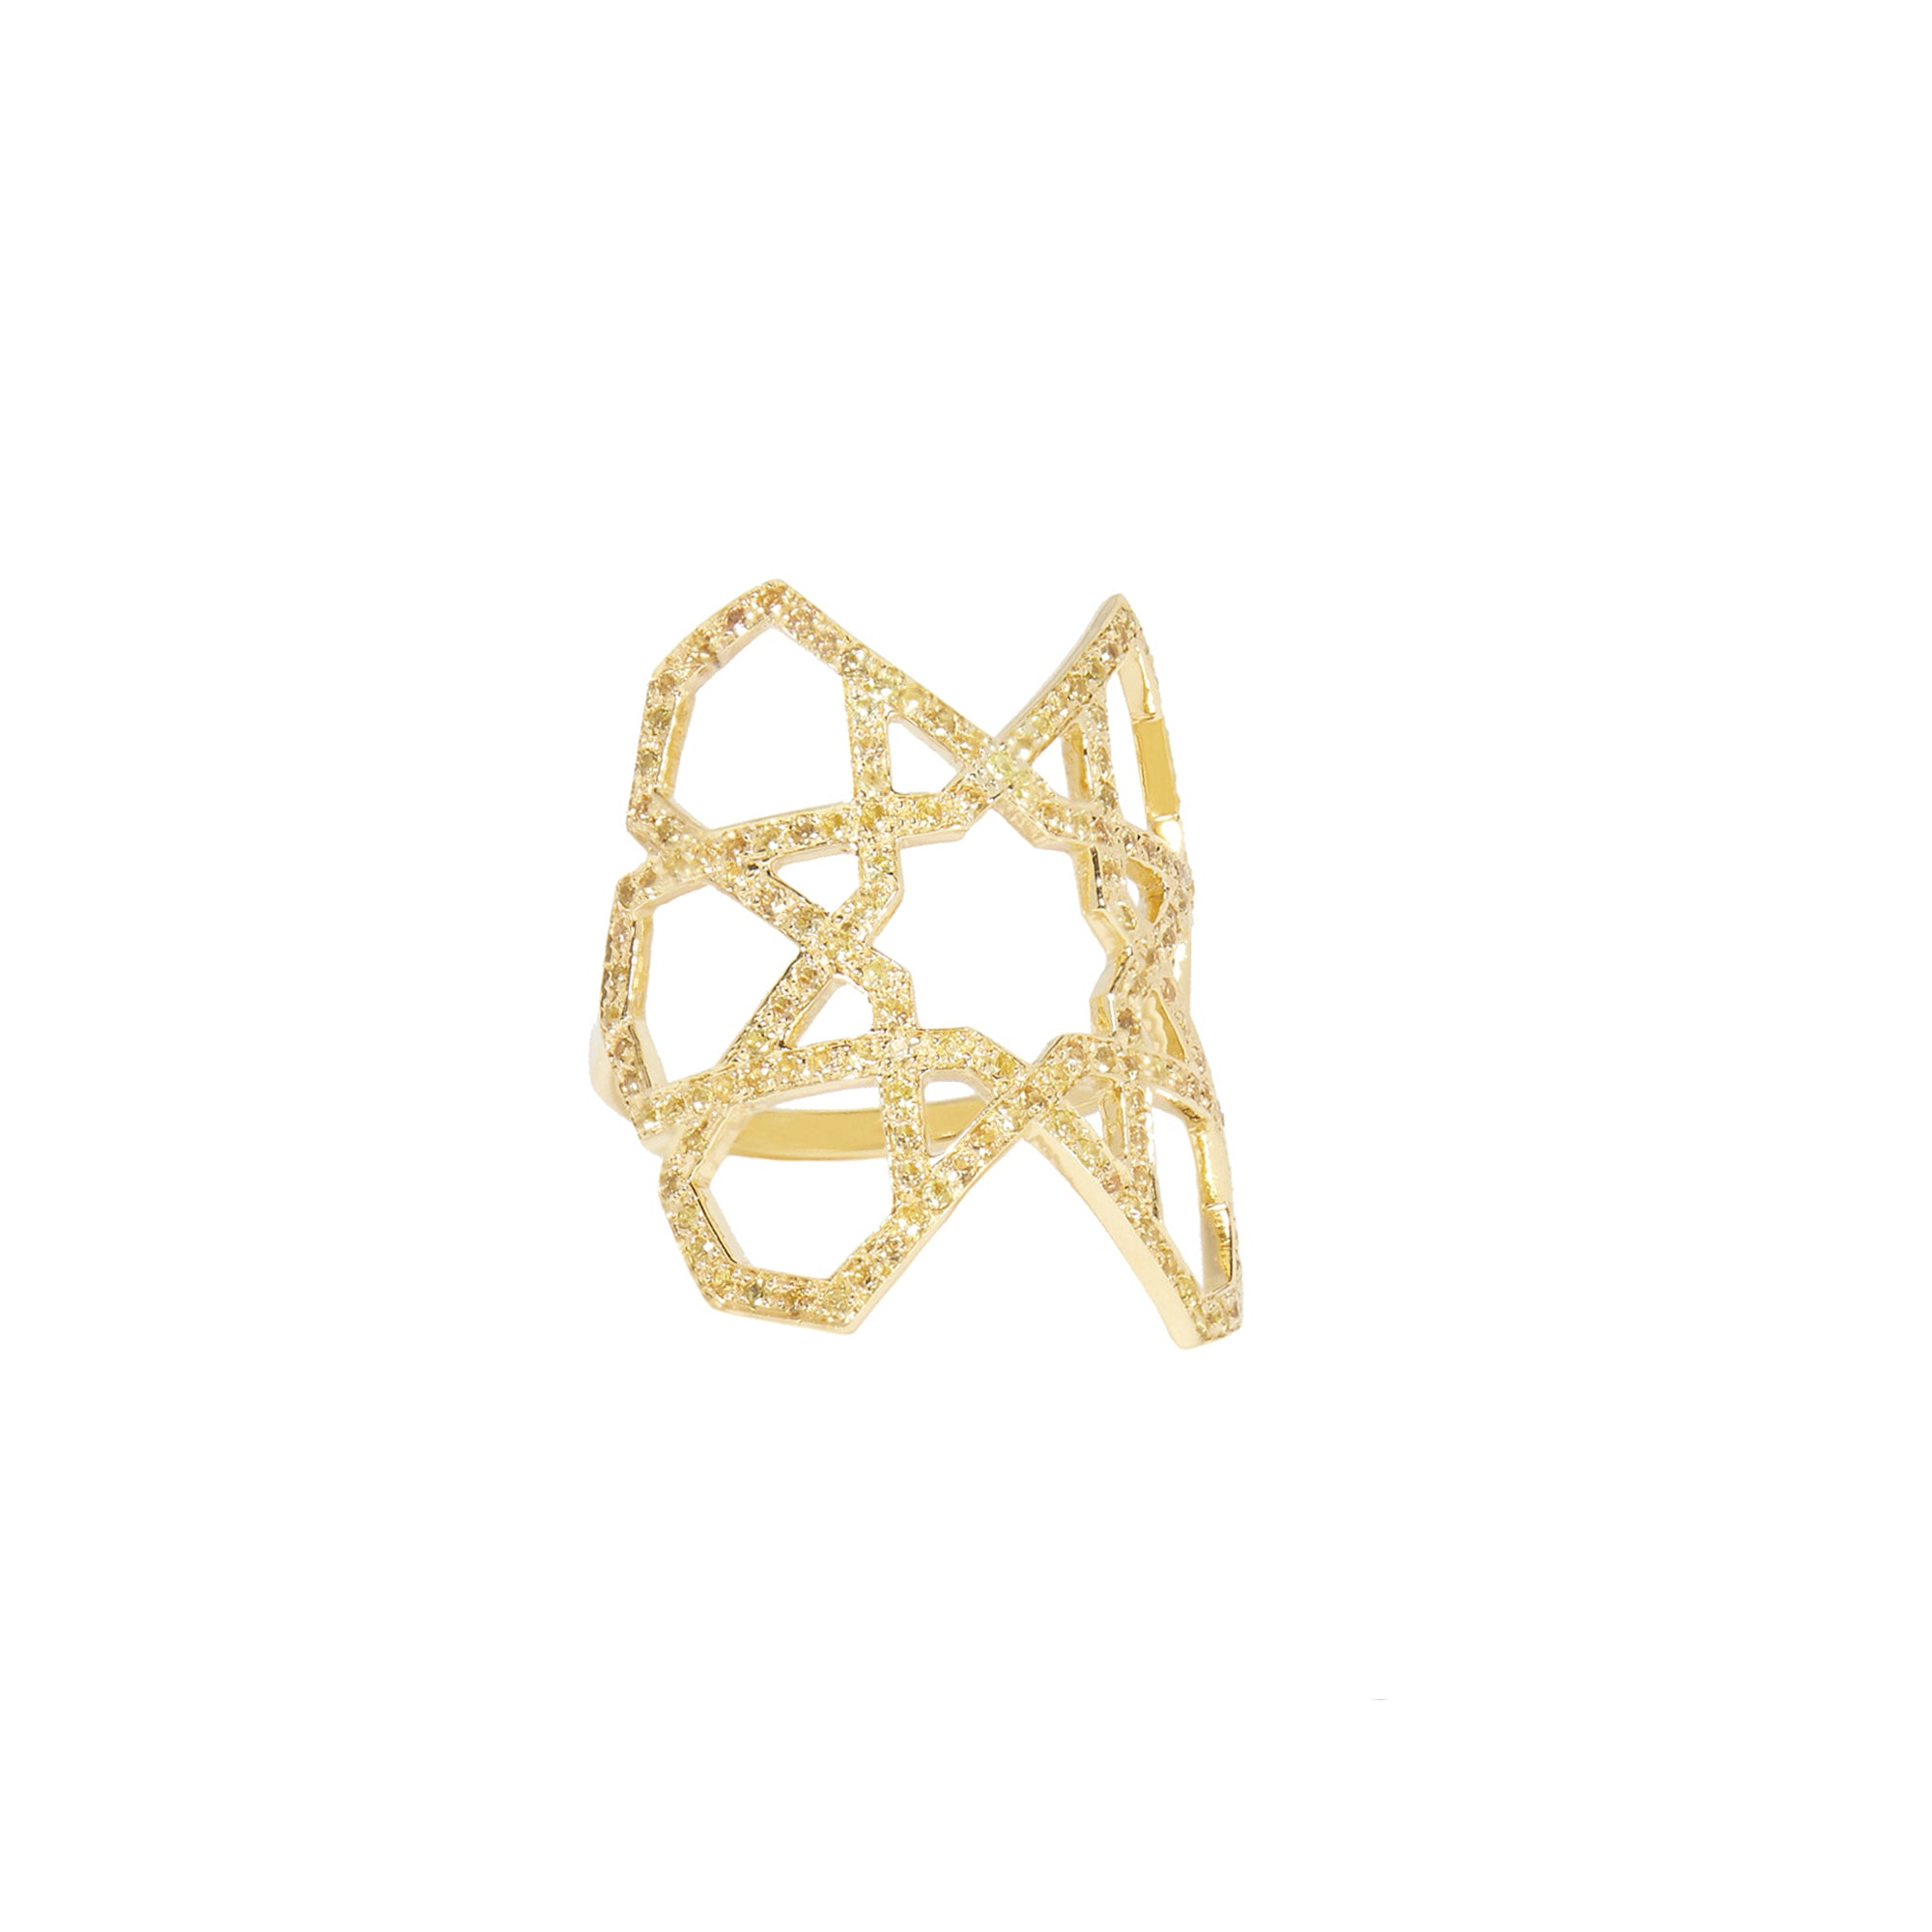 Ralph Masri Arabesque Deco Ring - Yellow Gold - Rings - Broken English Jewelry